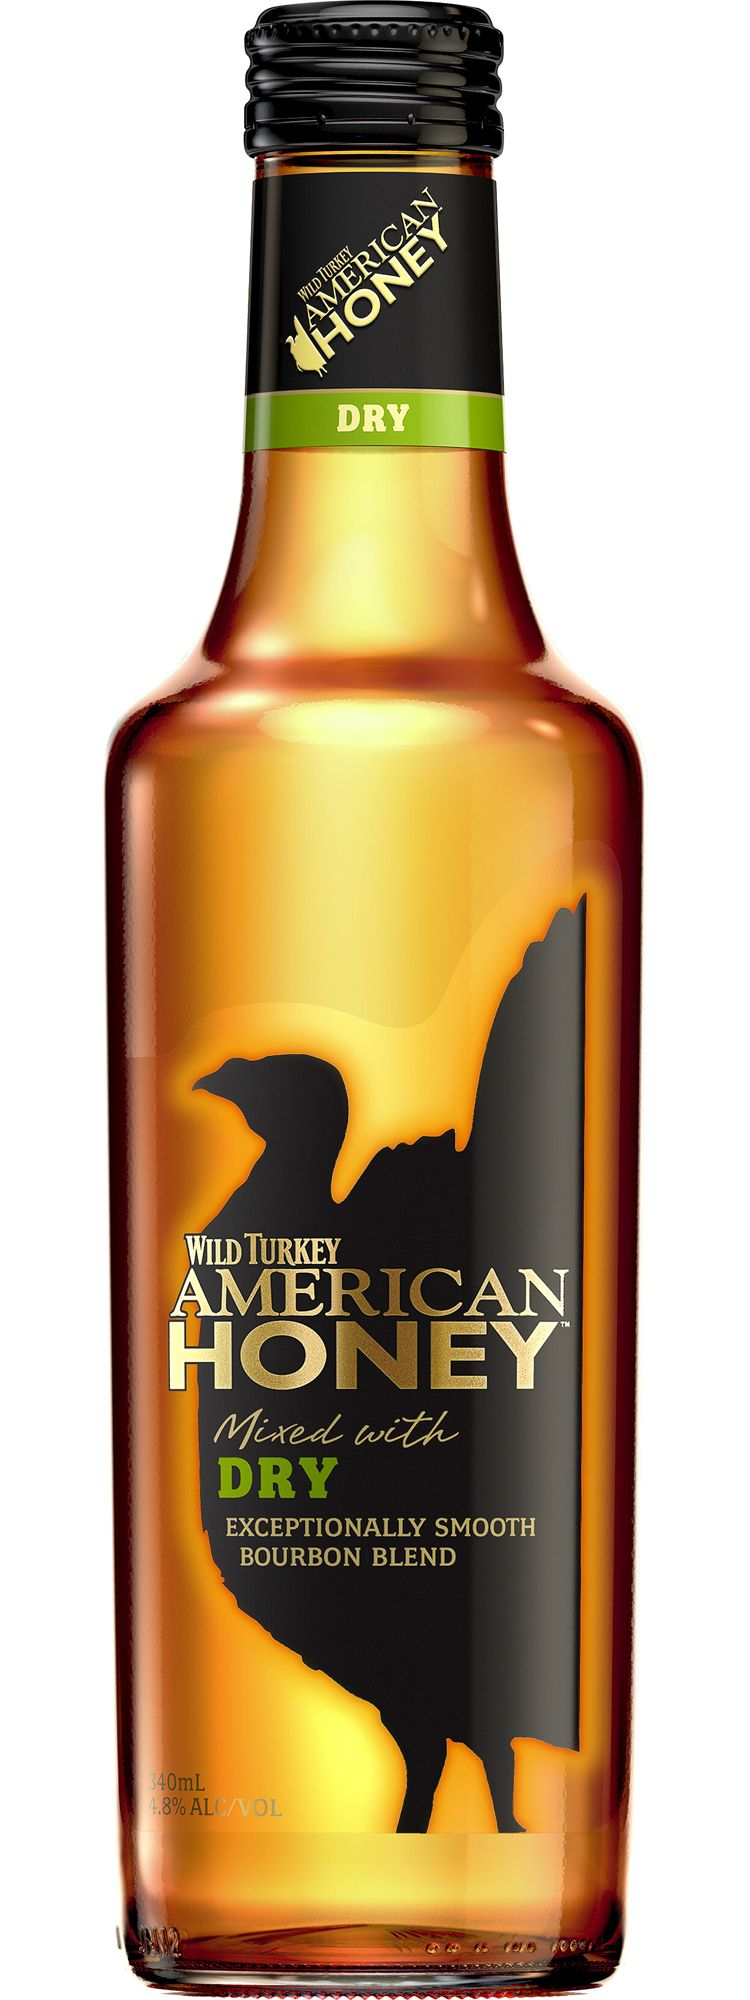 Wild Turkey American Honey Rtd Keeping A Bottle Of This Around For Head Cold And Other Ailments Alcohol Spirits Bottle Wild Turkey